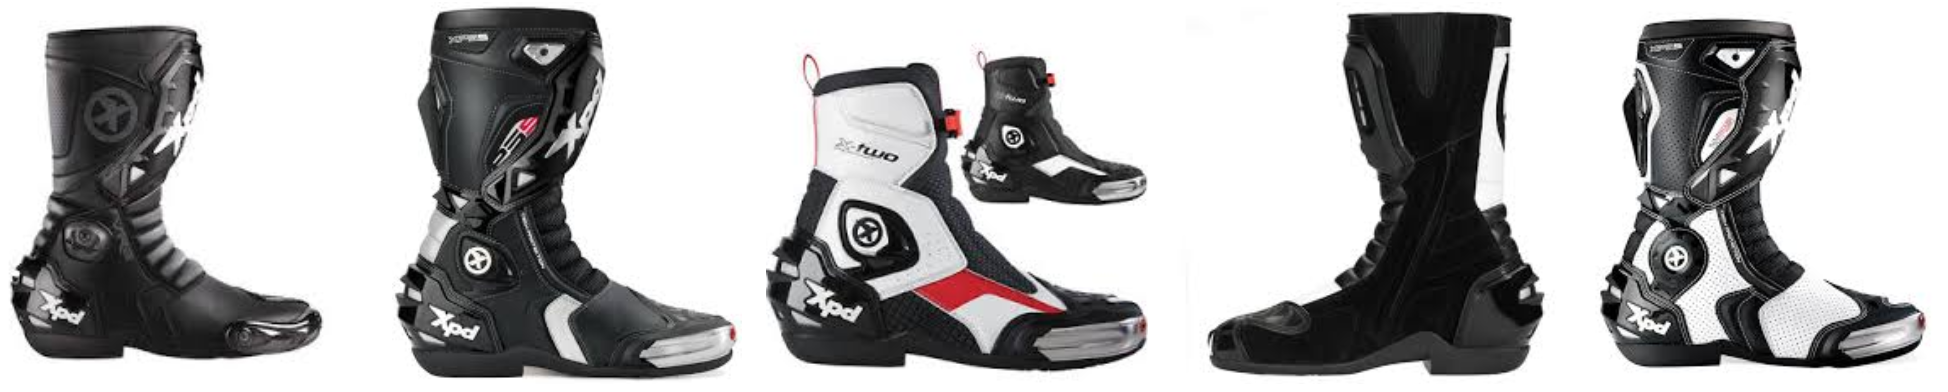 Spidi Motorcycle Boot Reviews